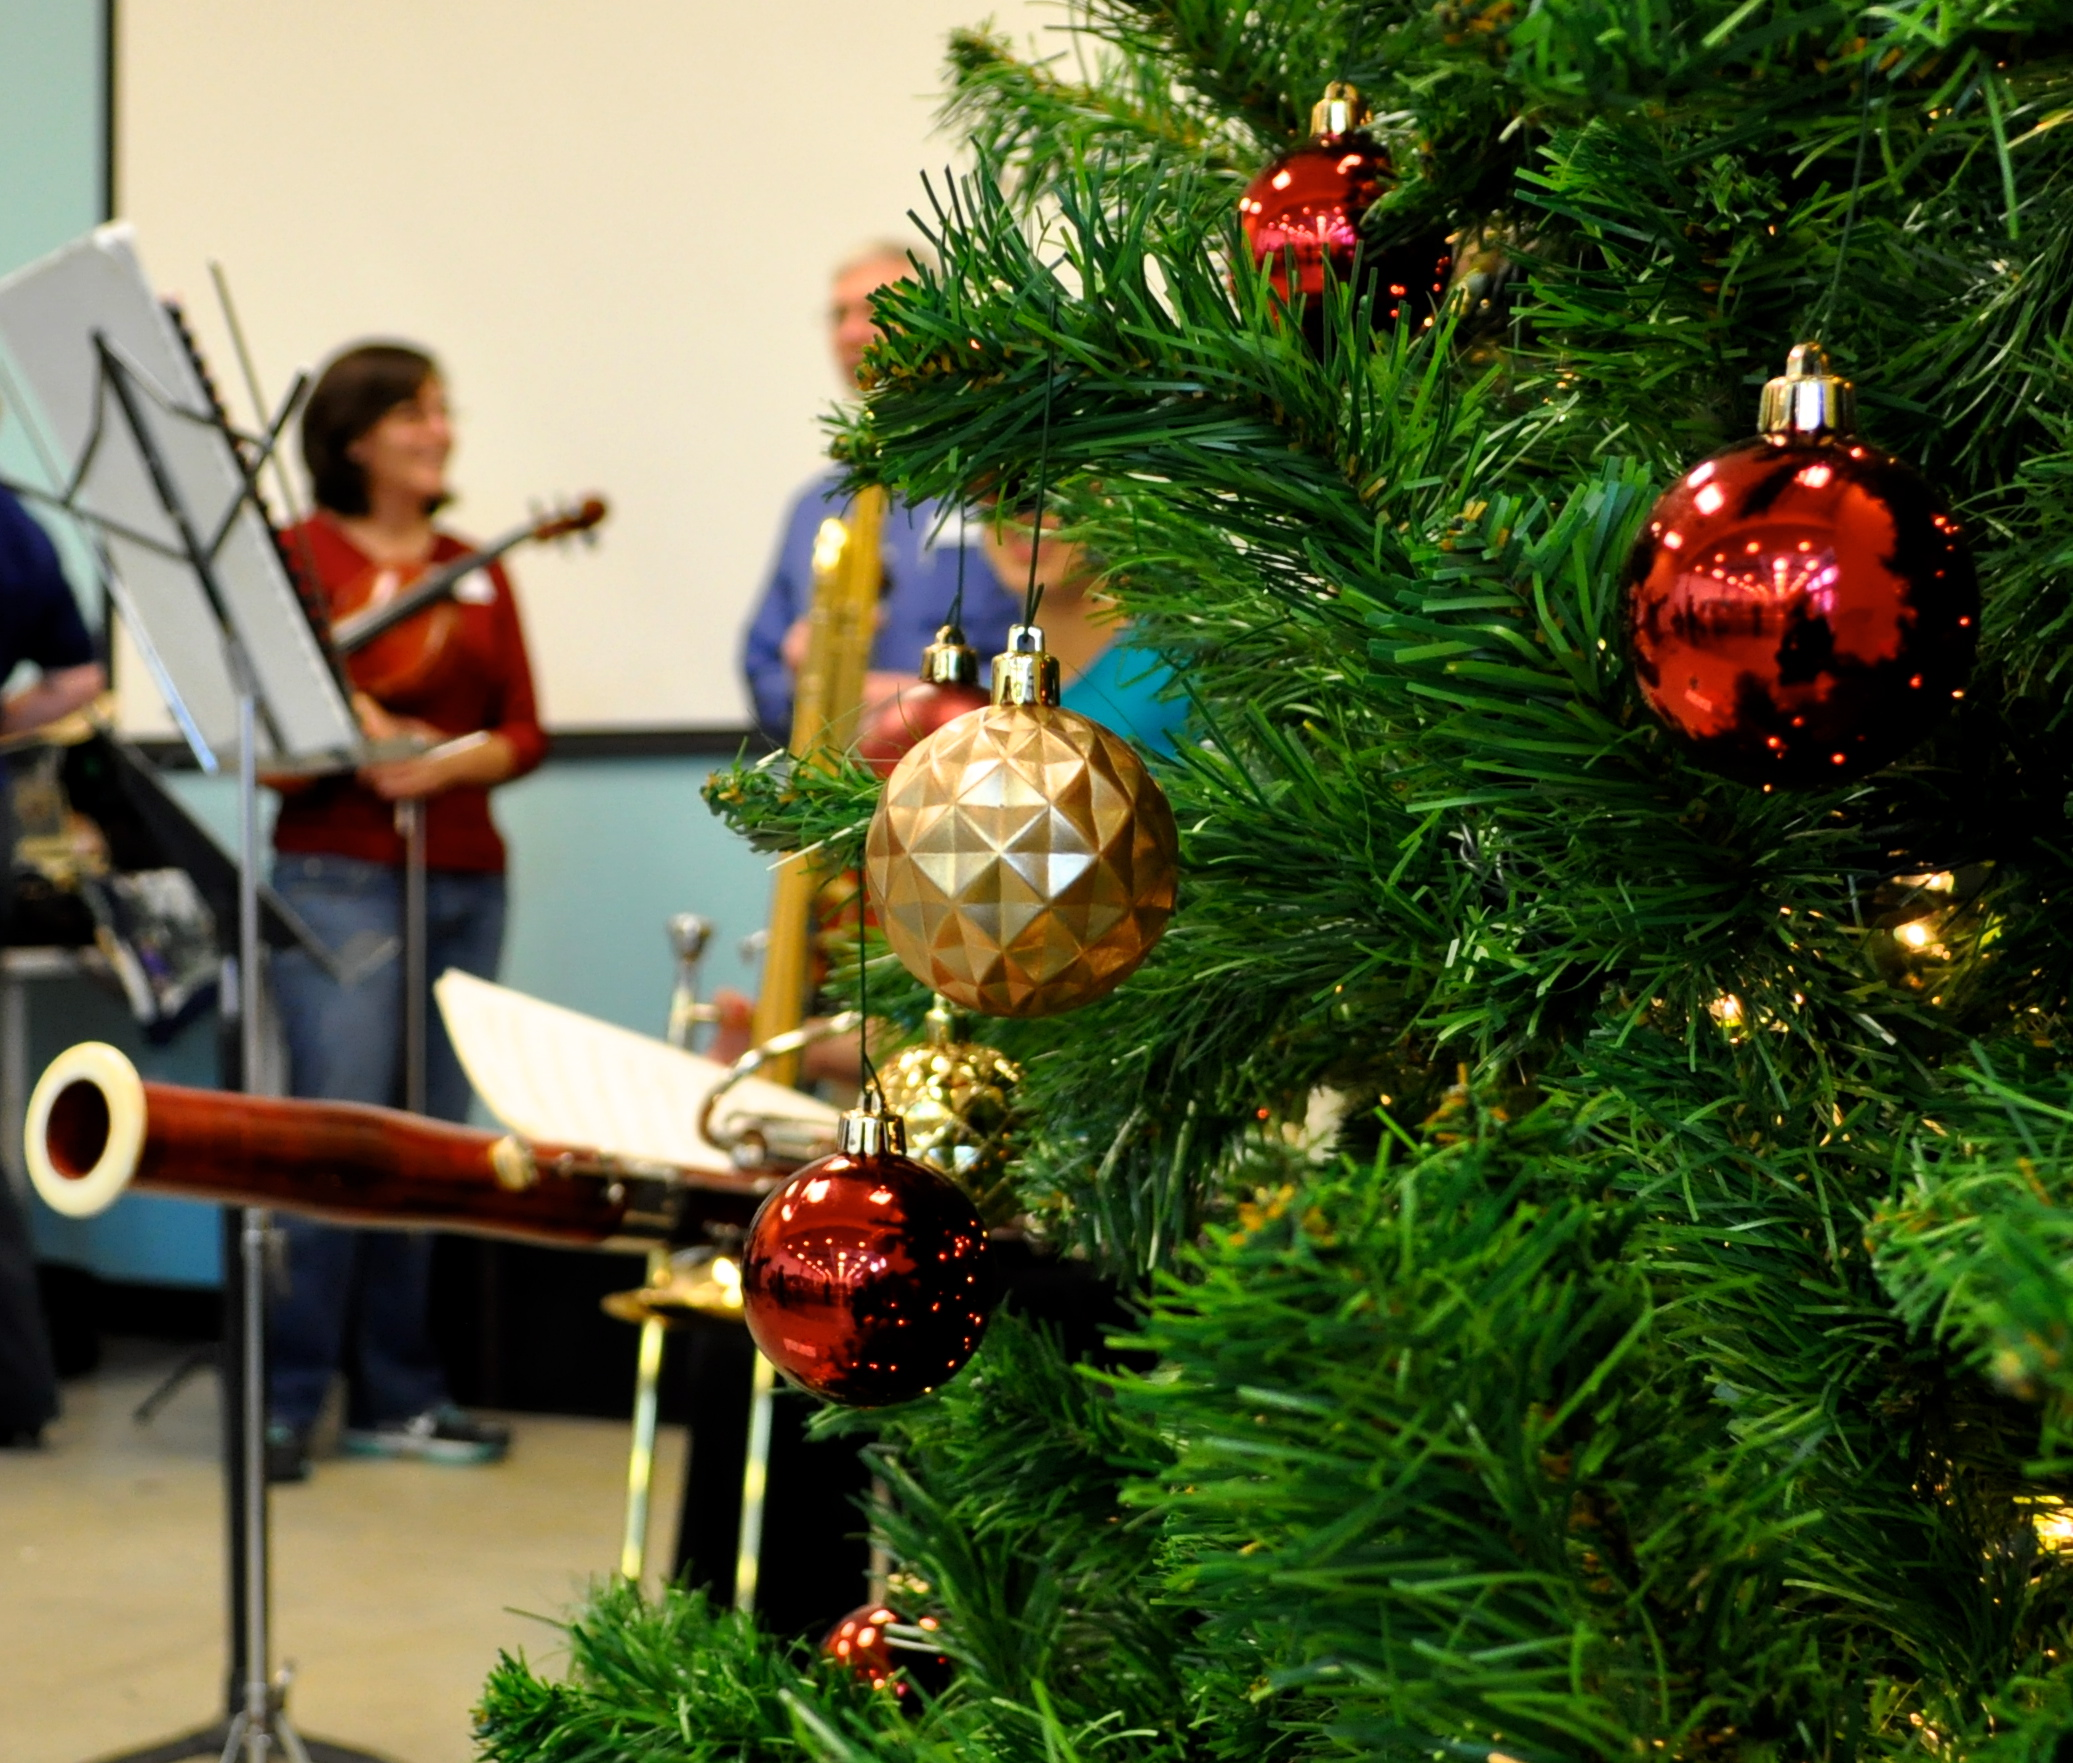 Musicians prepare for their holiday performance at Haven for Hope in December 2012. Photo by Iris Dimmick.